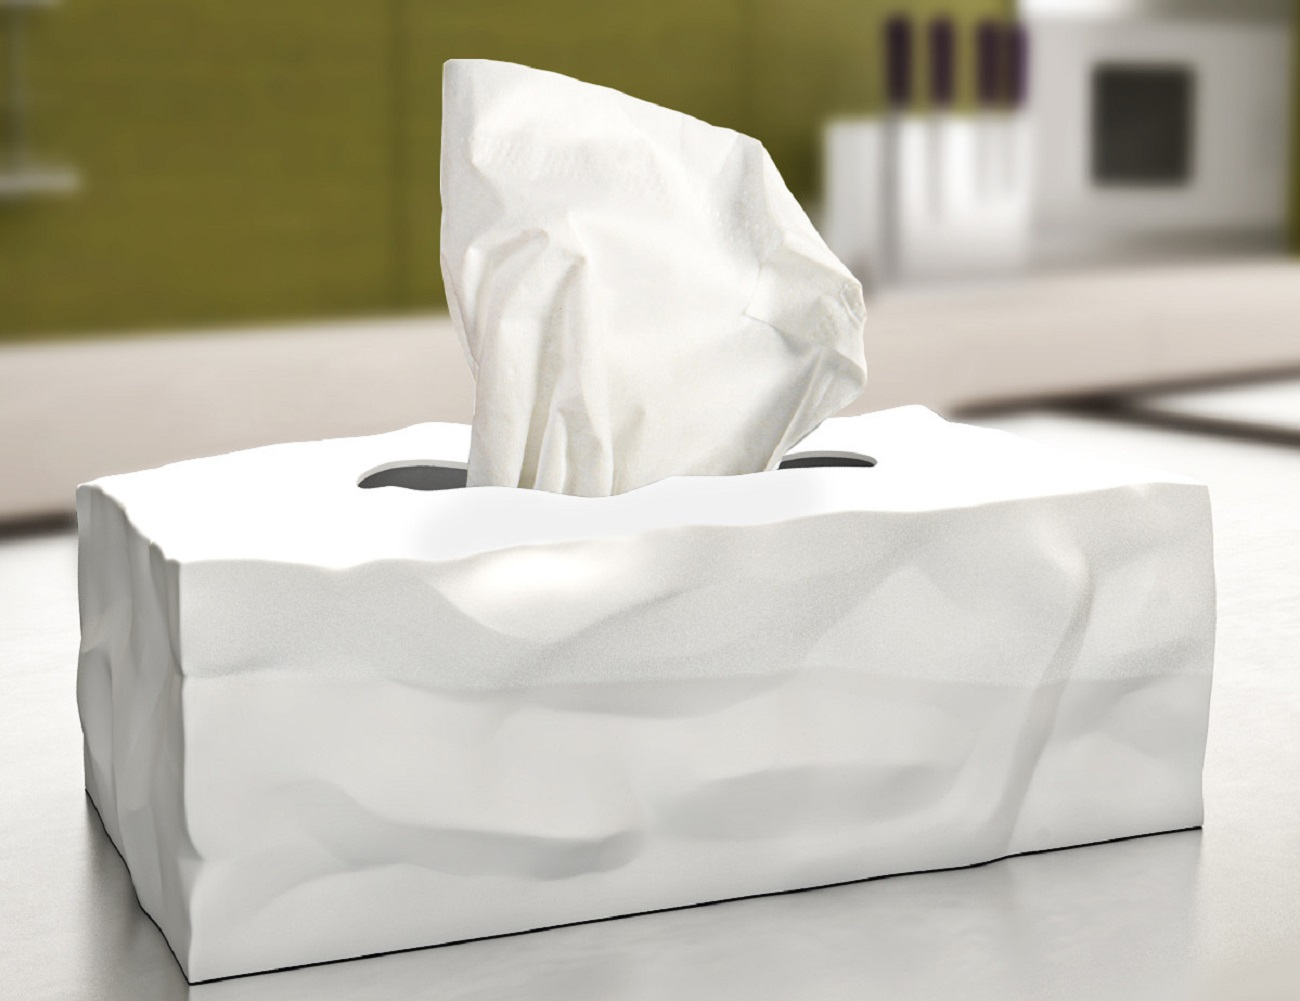 Wipy+II+Tissue+Box+By+Essey